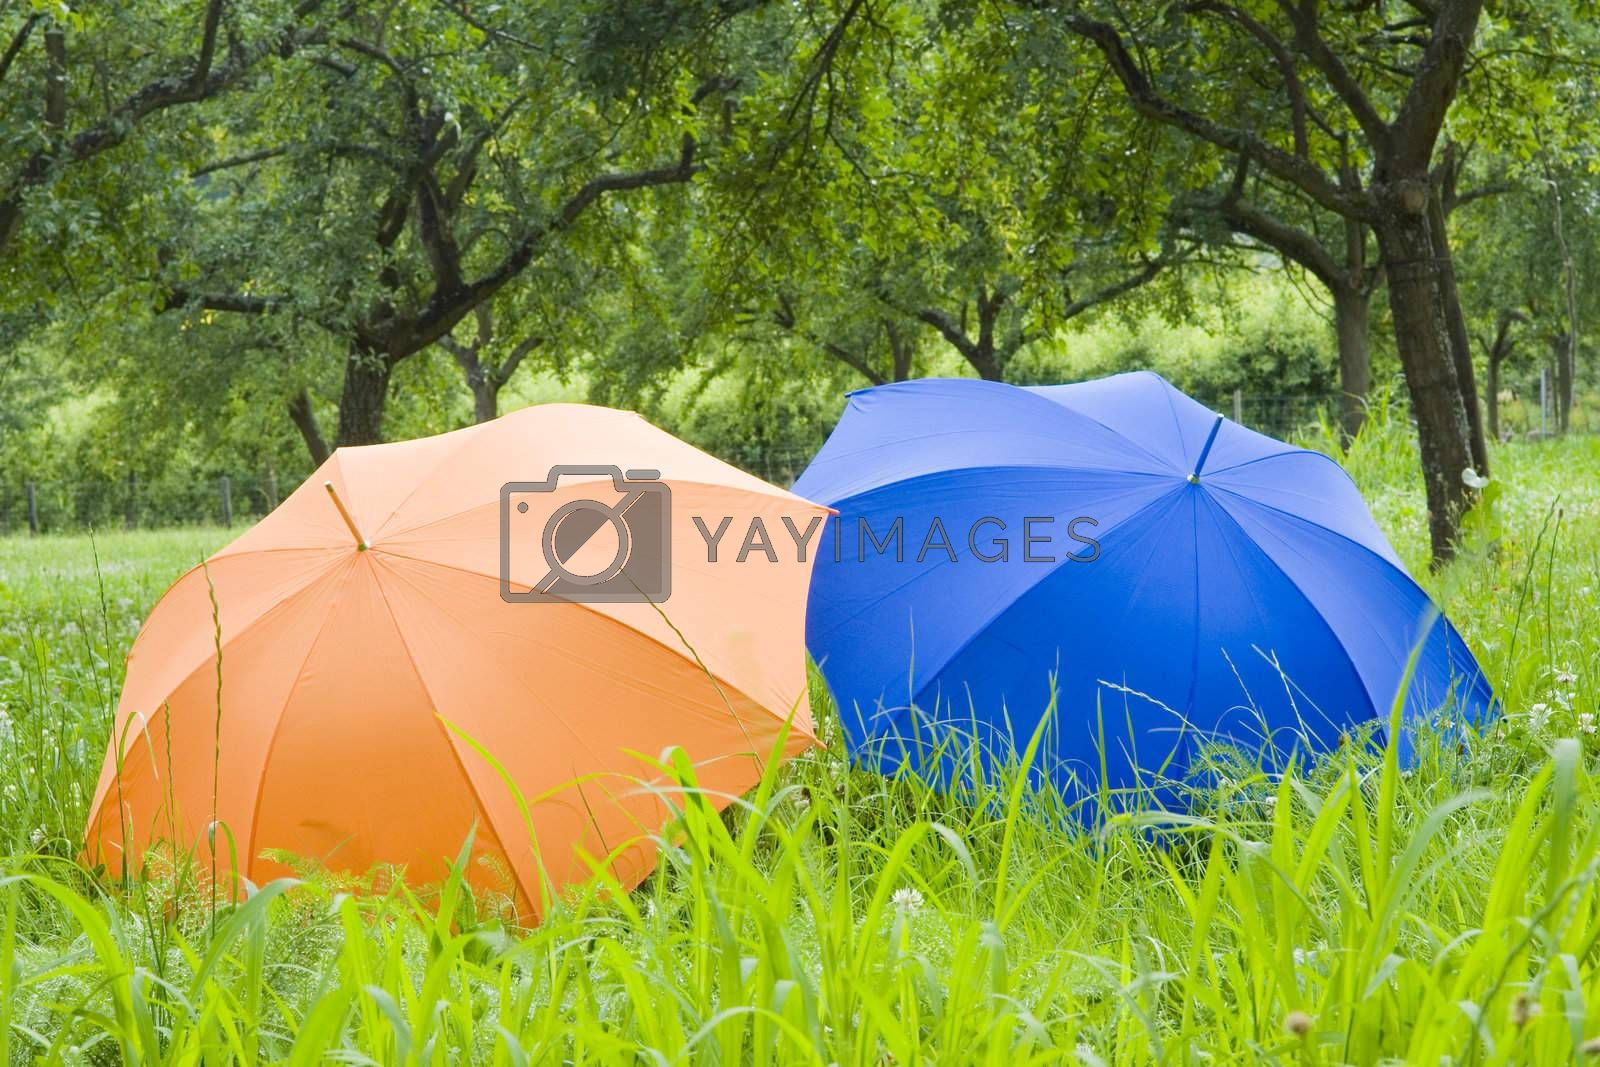 Orange and blue umbrellas in a meadow of green grass